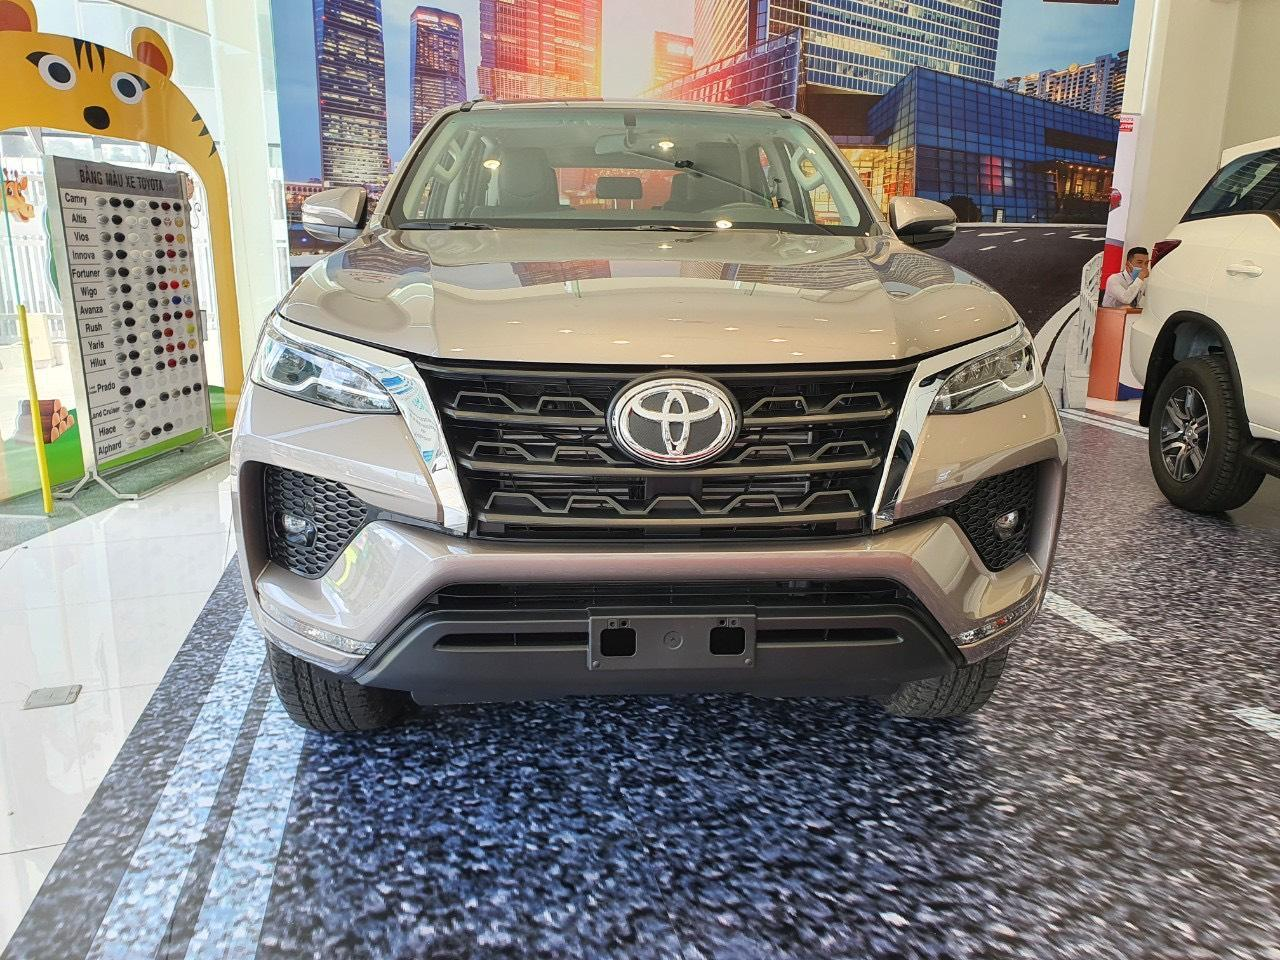 chi-tiet-xe-toyota-fortuner-4x4-2-7-at-2021-danhgiaxehoi-vn-6